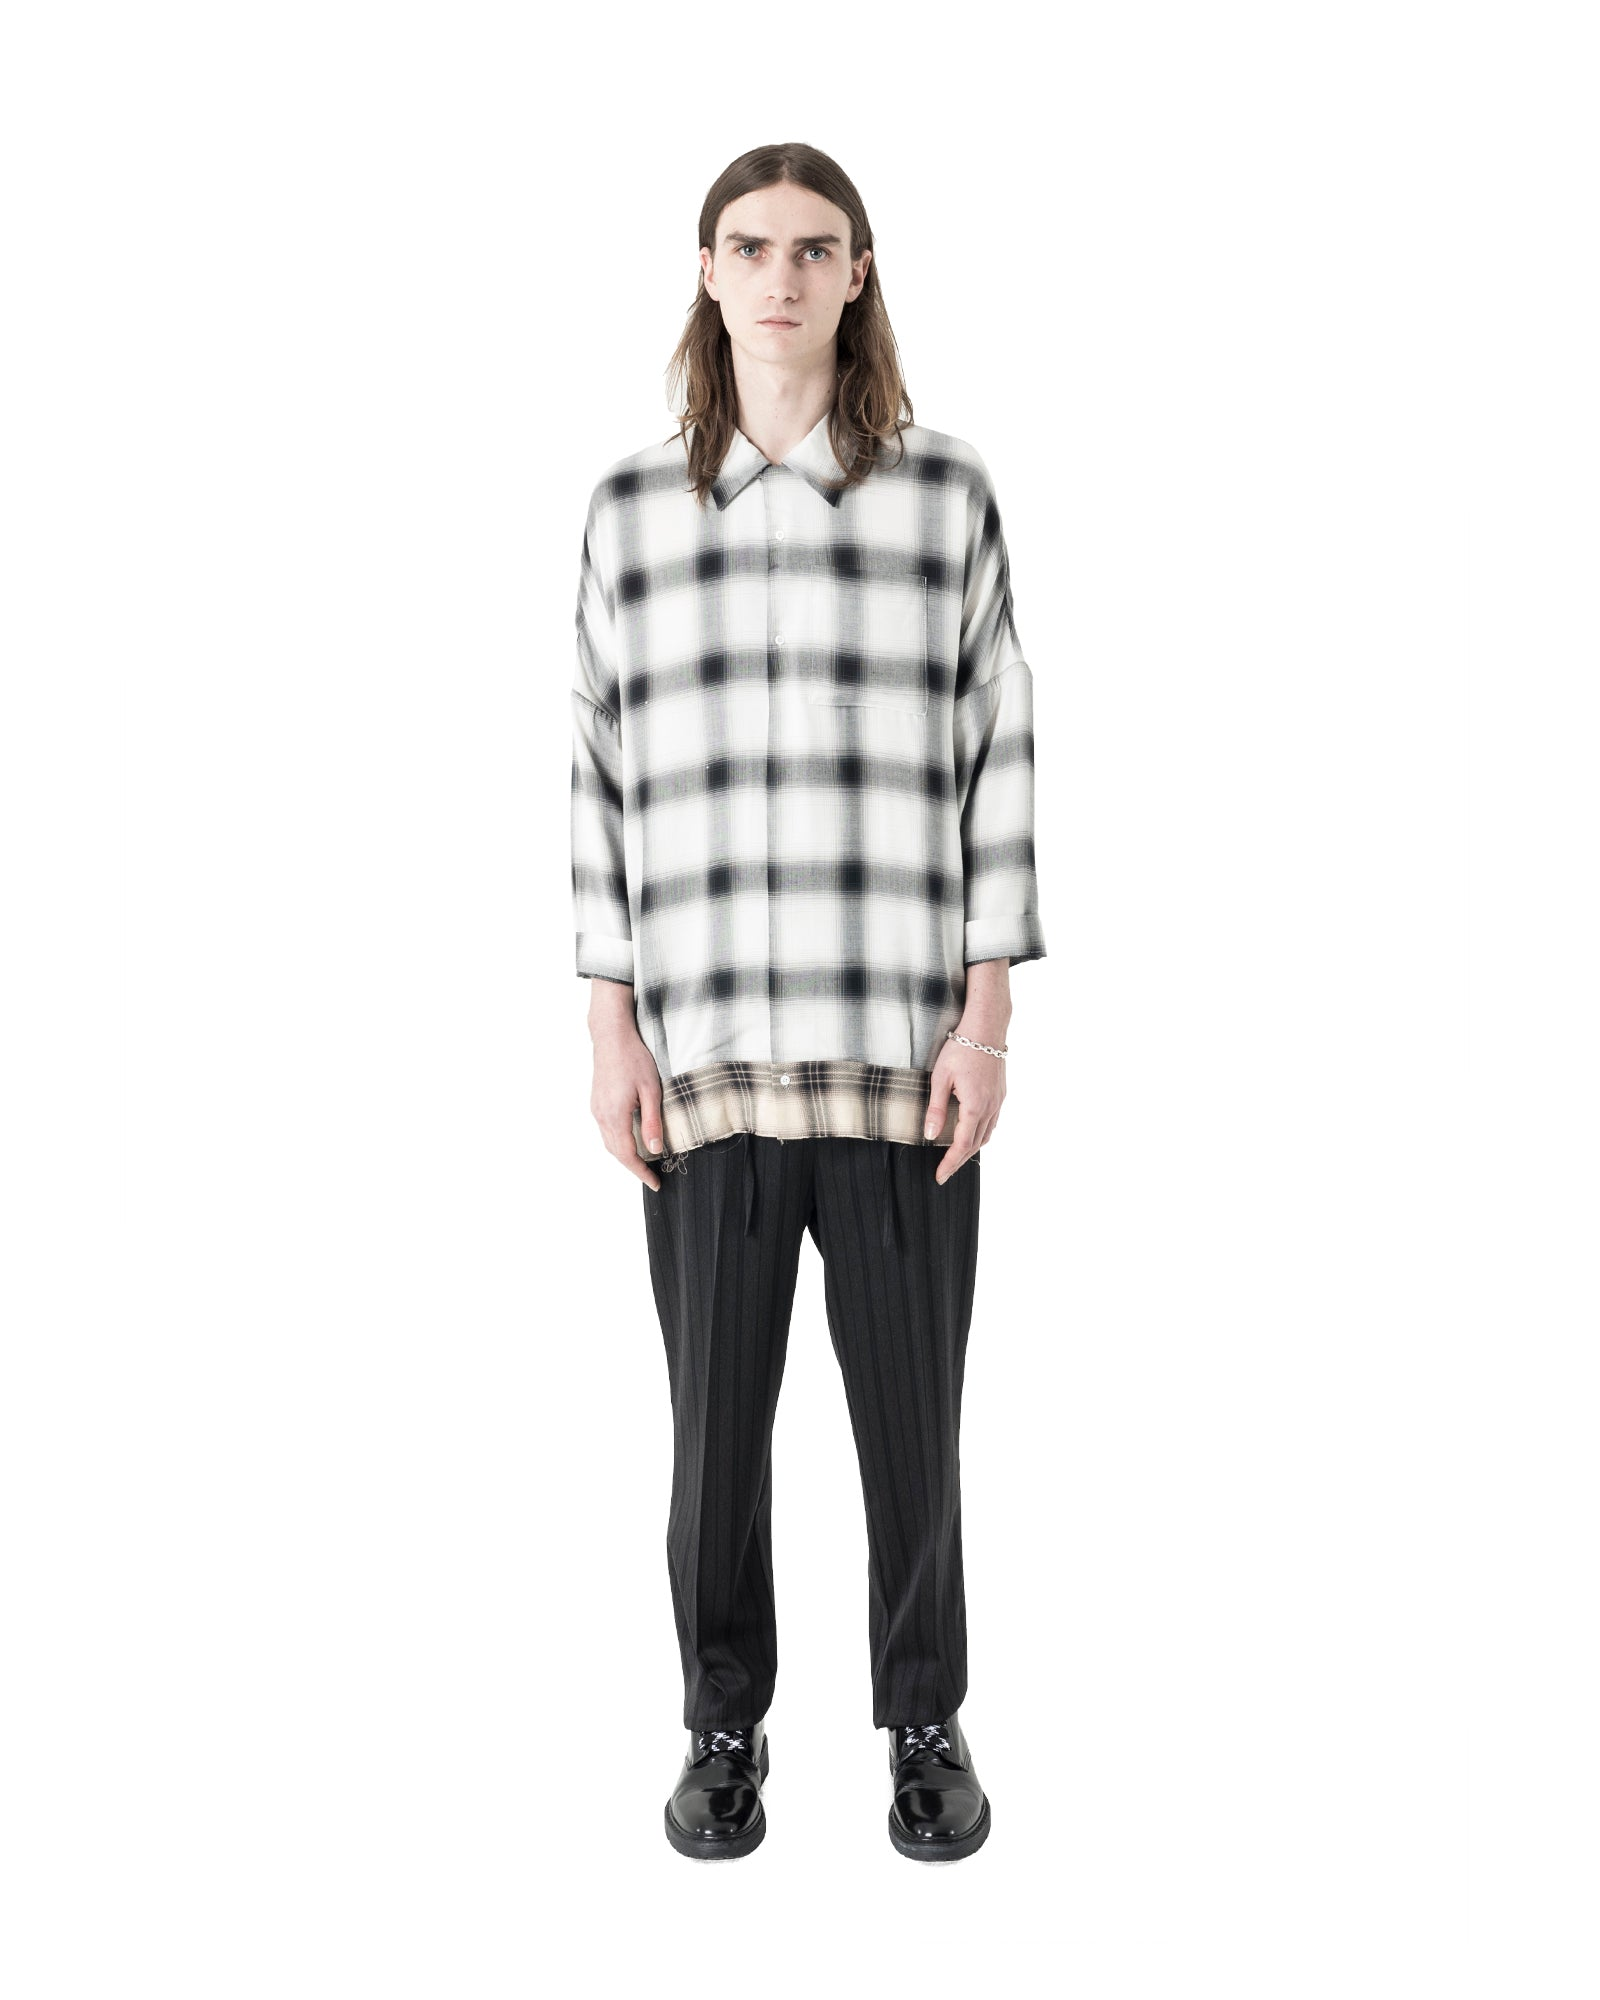 Dun Pant - Charcoal Stripe